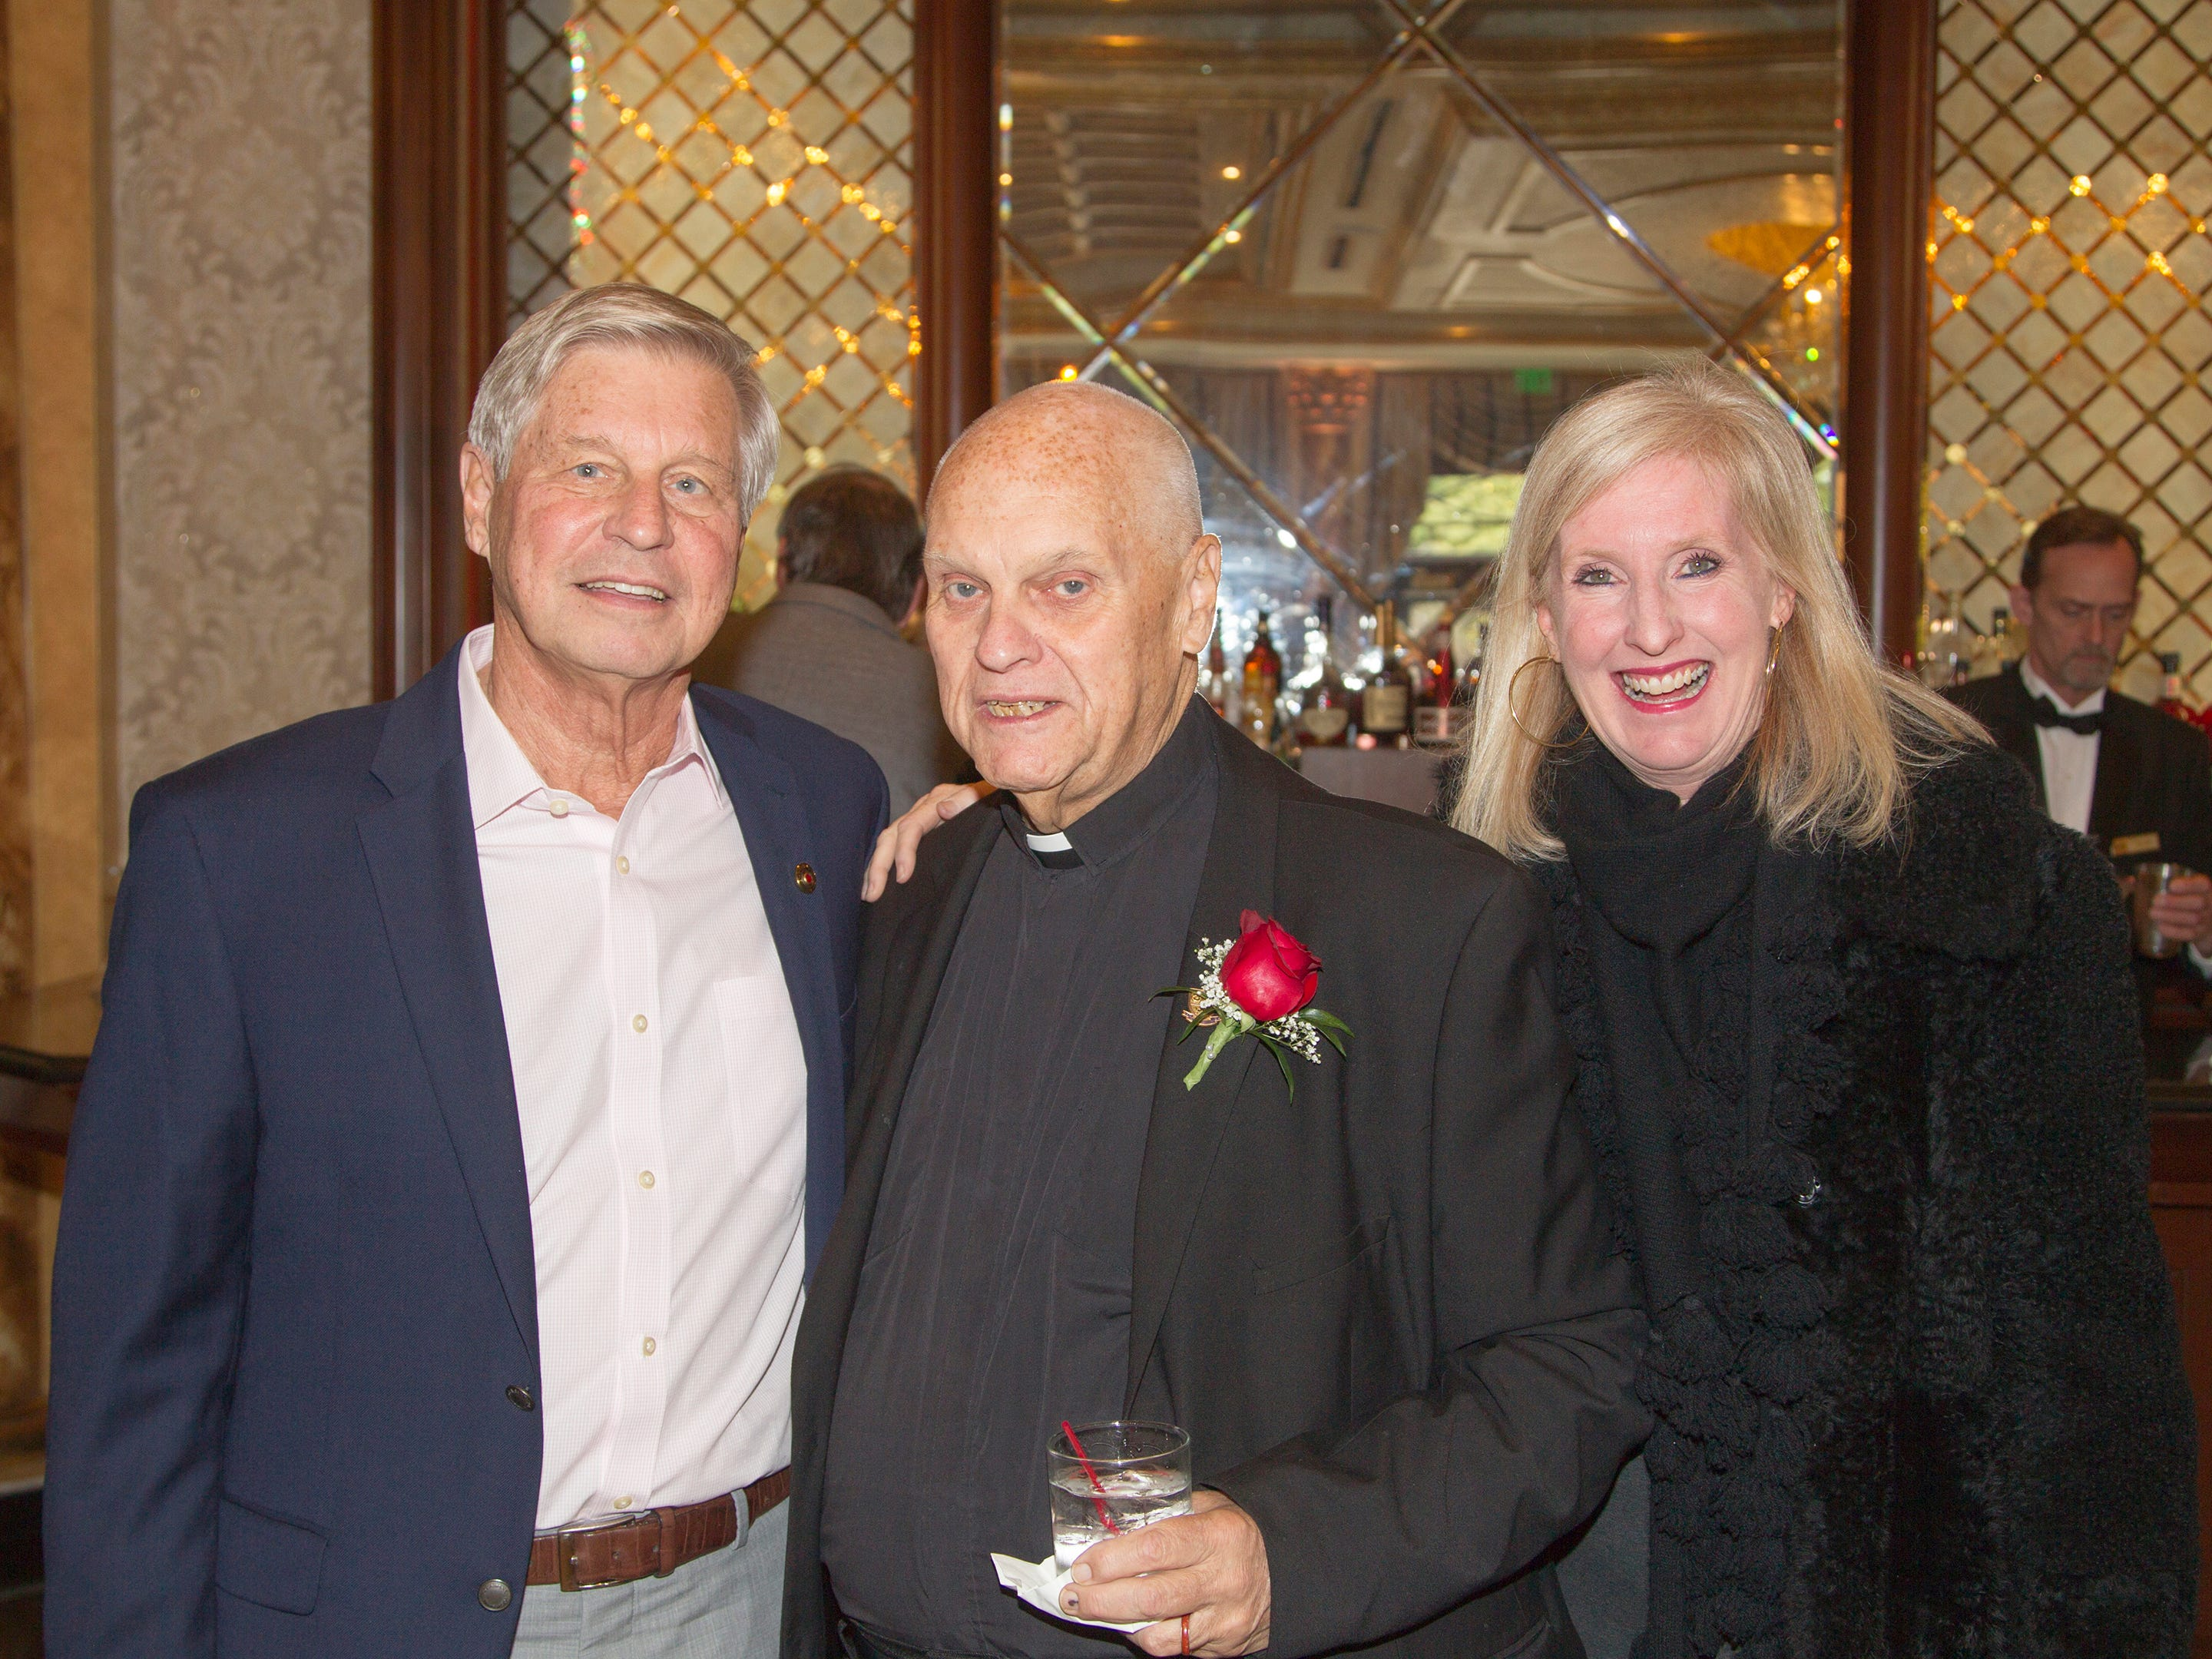 Doug Sealy, Honoree Br. Brian Walsh, Kelly Price. Bergen Catholic High School Hall of Fame Dinner at Seasons in Washington Twp. 03/31/2019